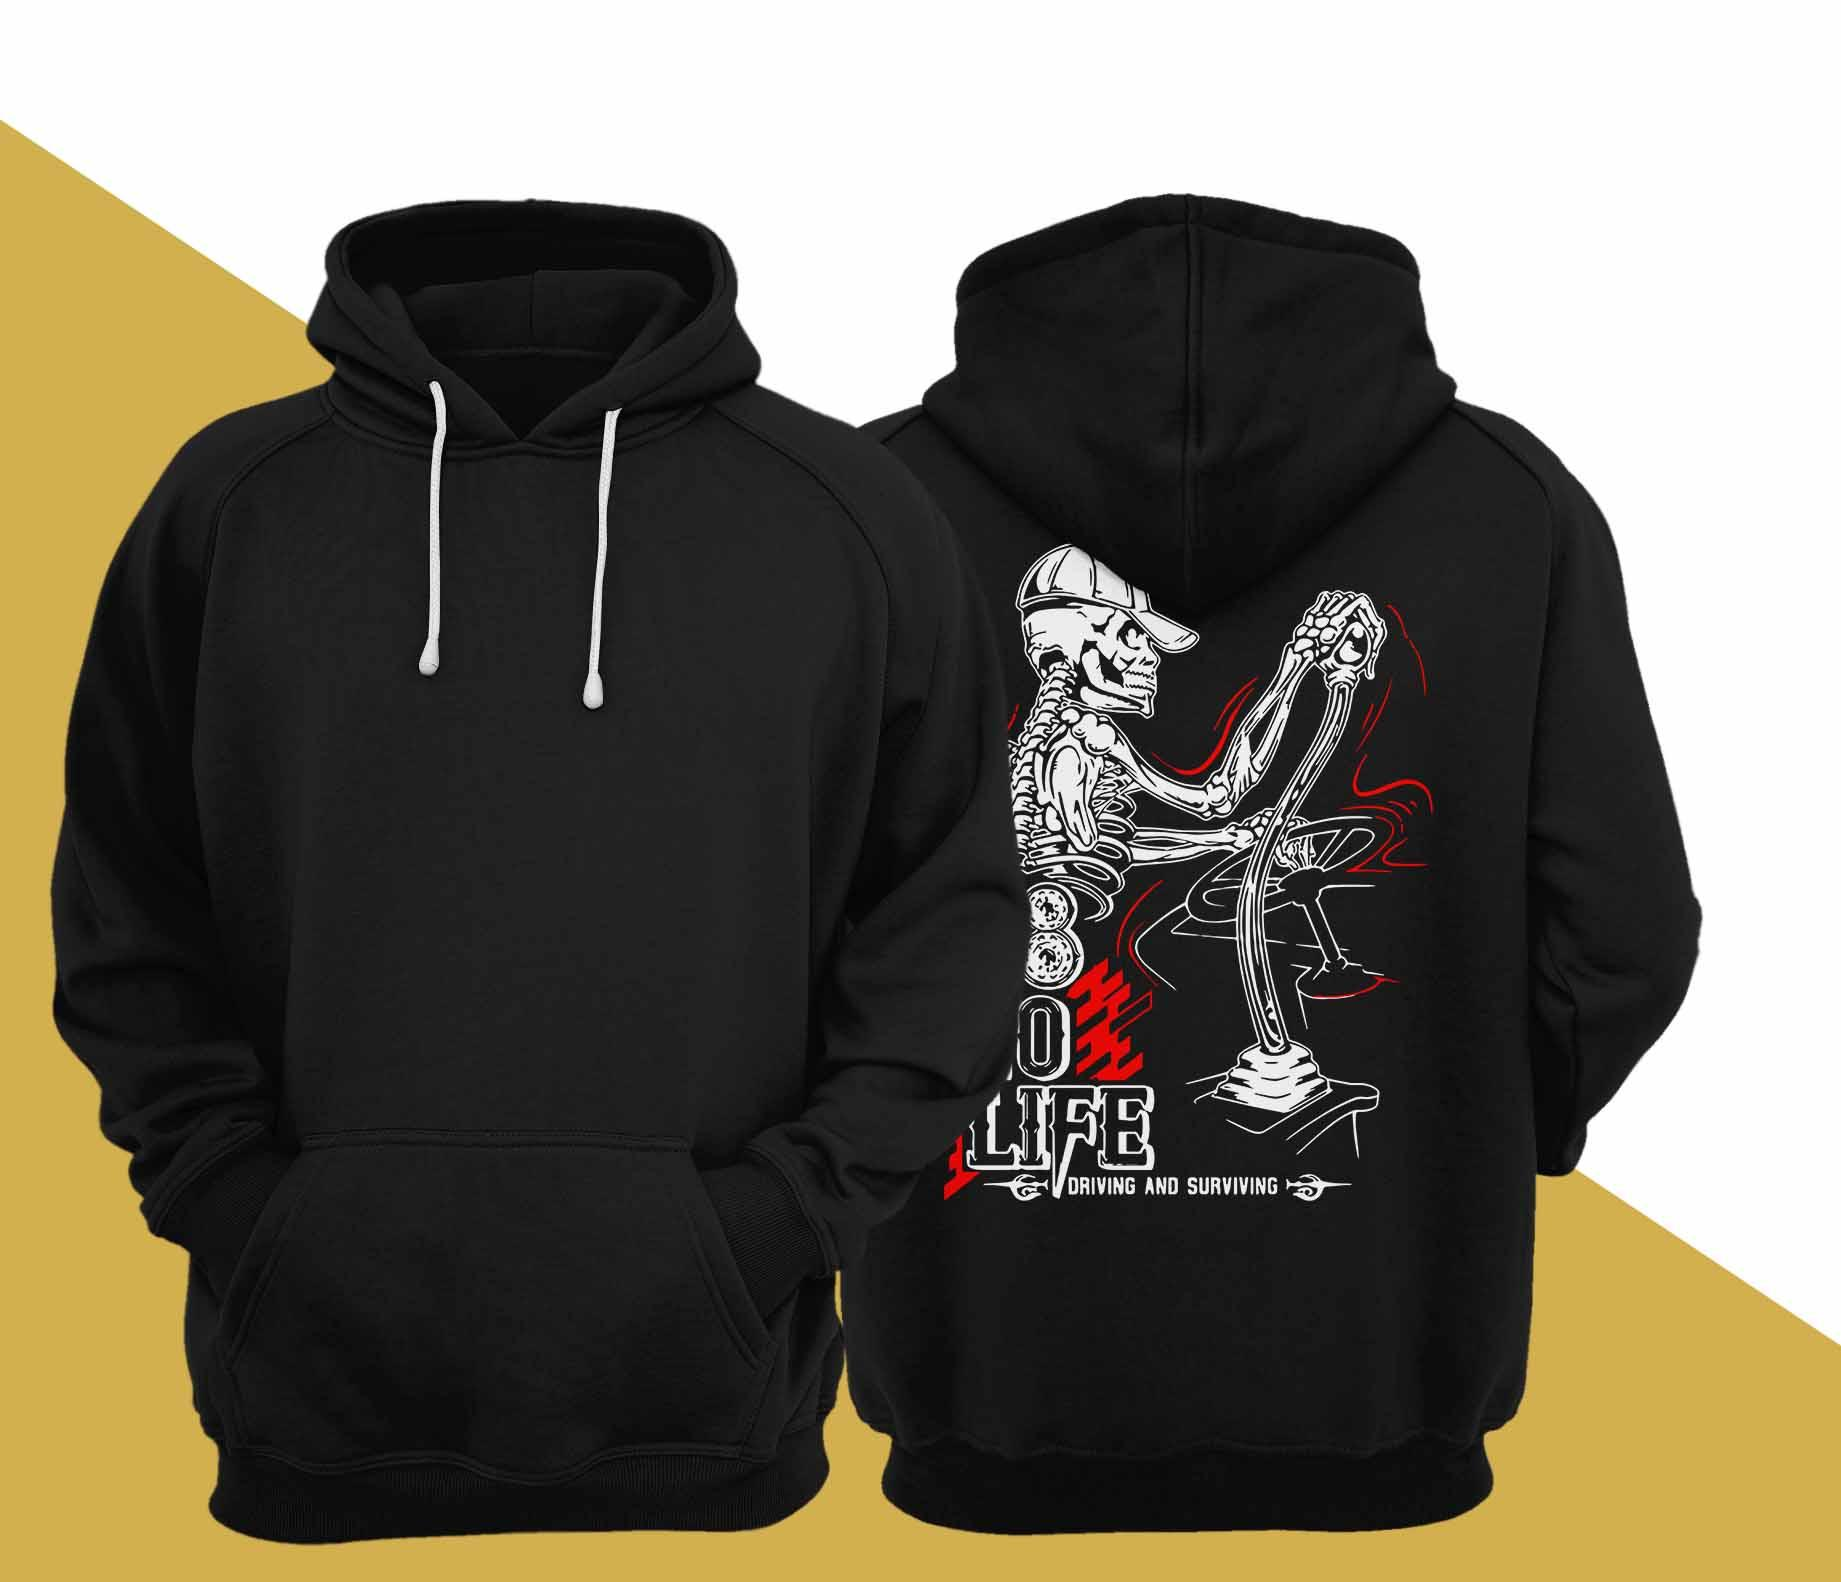 18 To Life Driving And Surviving Hoodie